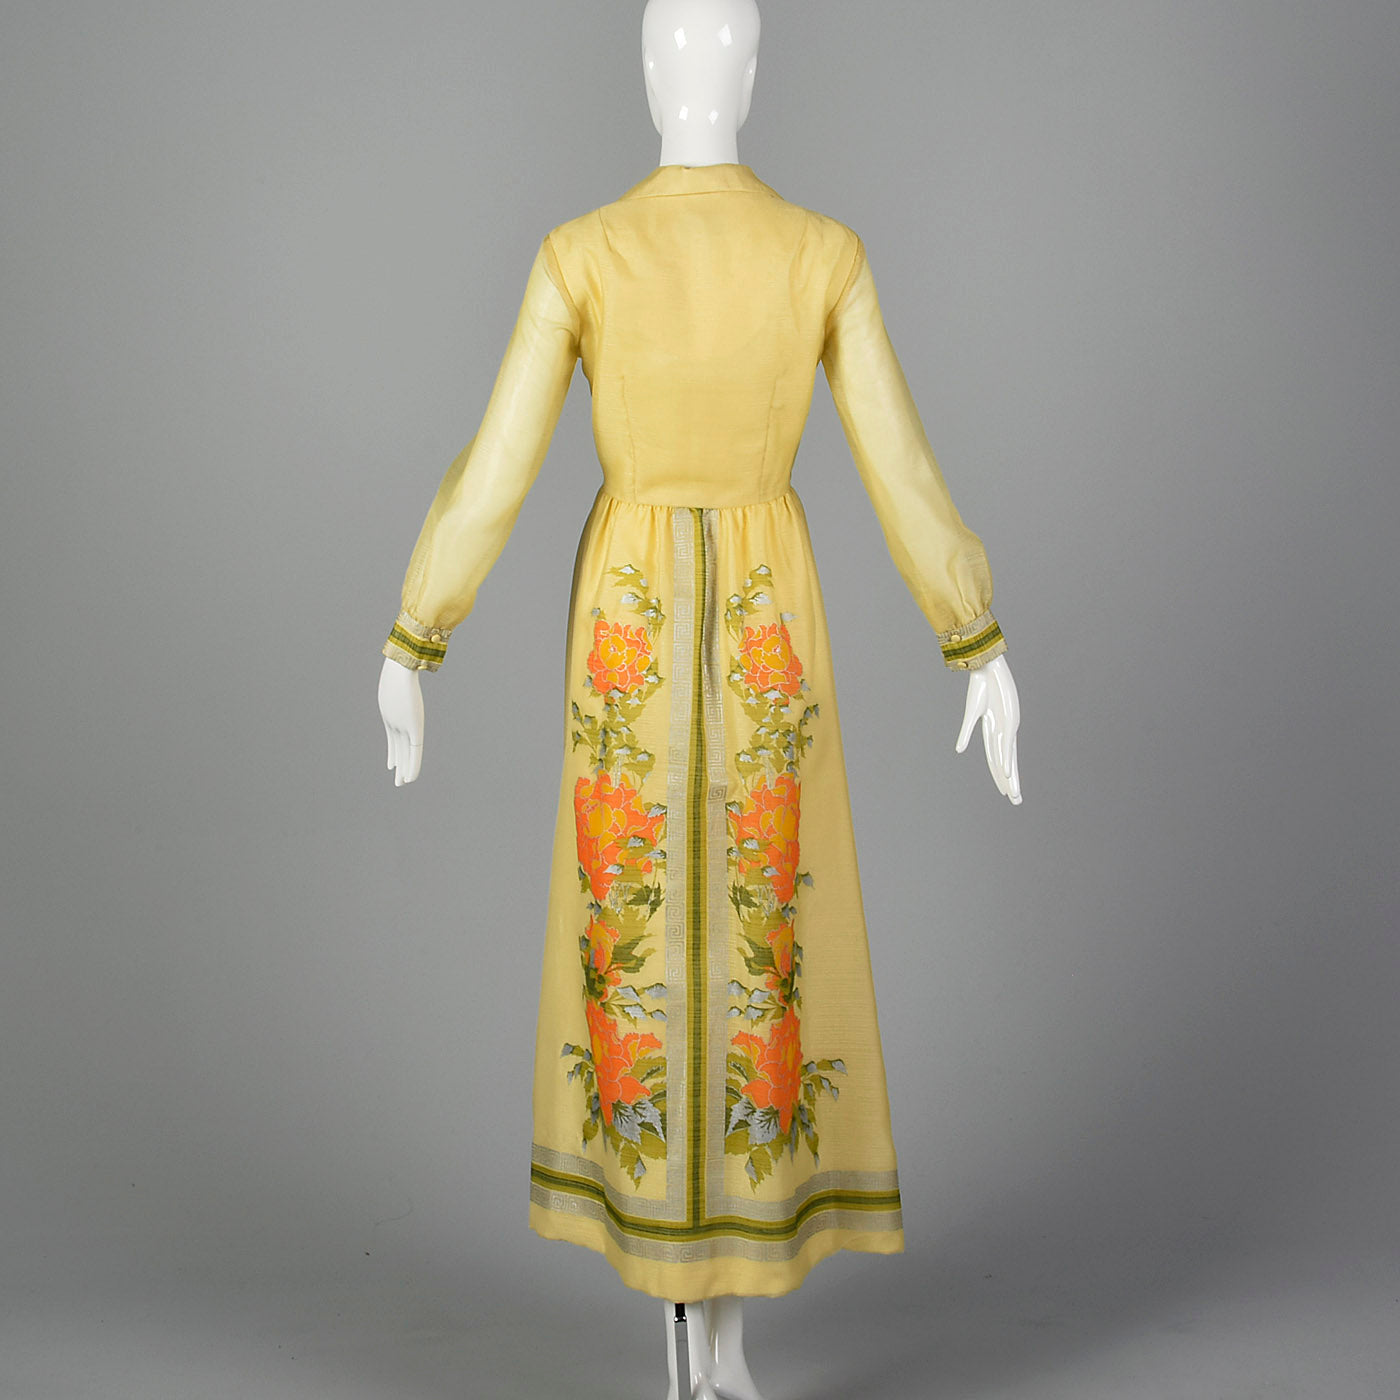 1970s Alfred Shaheen Yellow Maxi Dress